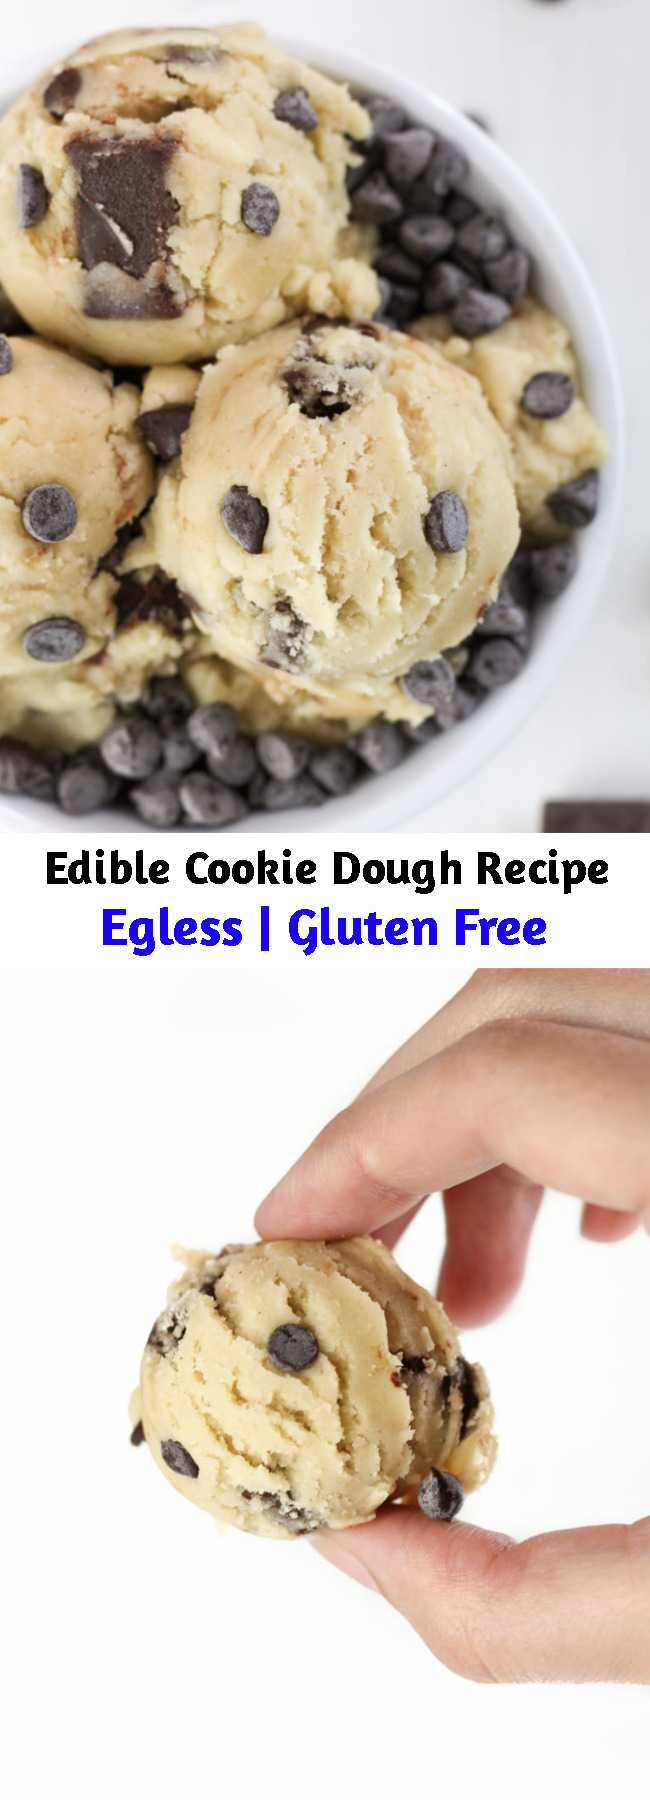 Edible Cookie Dough Recipe - Edible Cookie Dough recipe and How-To Make it Healthy, Gluten-Free, Dairy-Free and Lower-sugar! Making safe-to eat and egg-less cookie dough with just 7 simple ingredients and tips to baking the flour! Dreams do come true. #cookiedough #ediblecookiedough #glutenfree #healthy #healthydessert #glutenfreedessert #recipes #desserts #easyrecipes